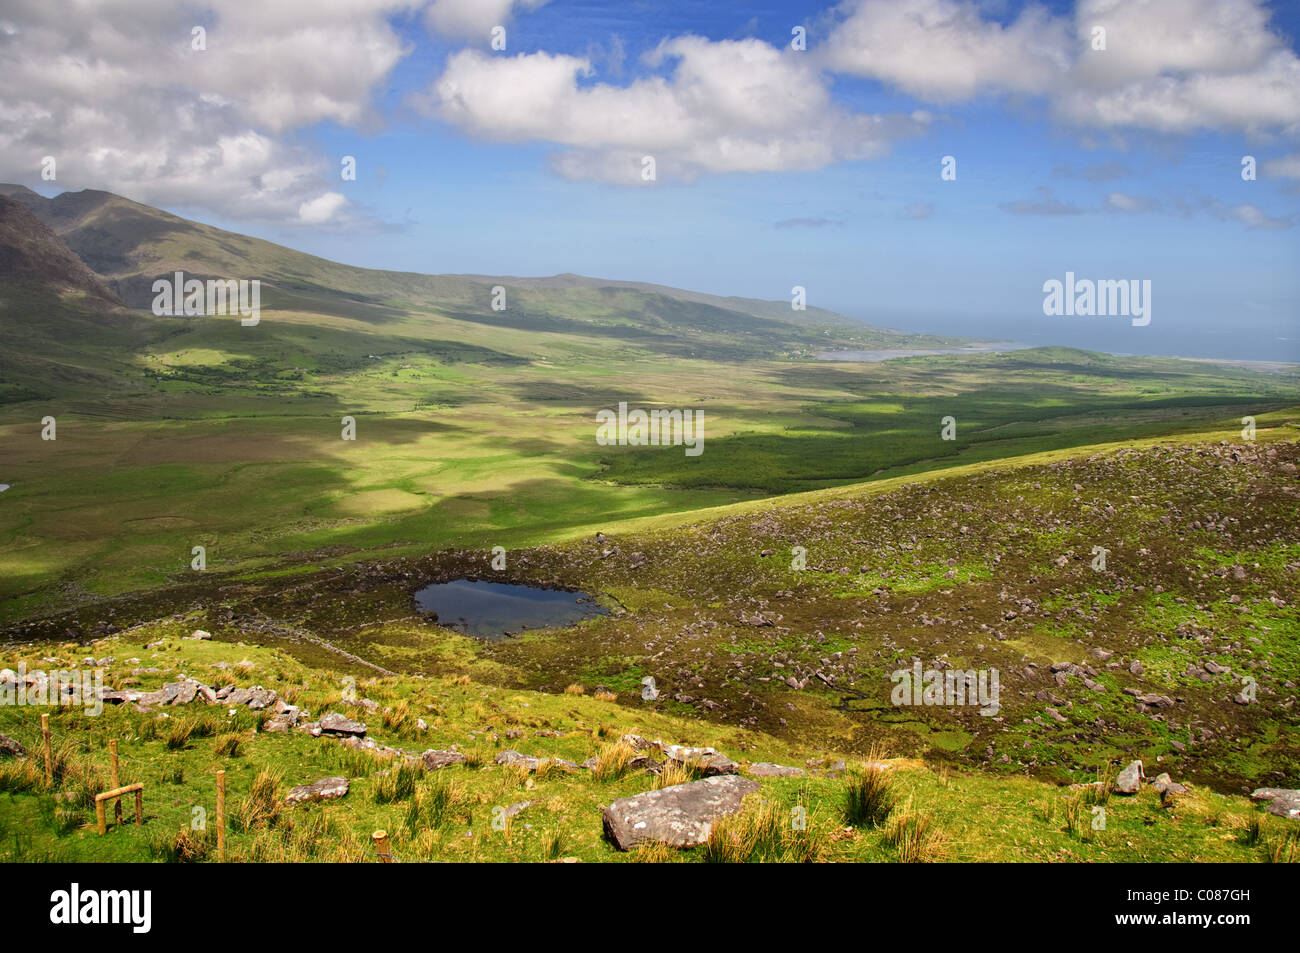 famous irish national park in ring of kerry ireland - Stock Image